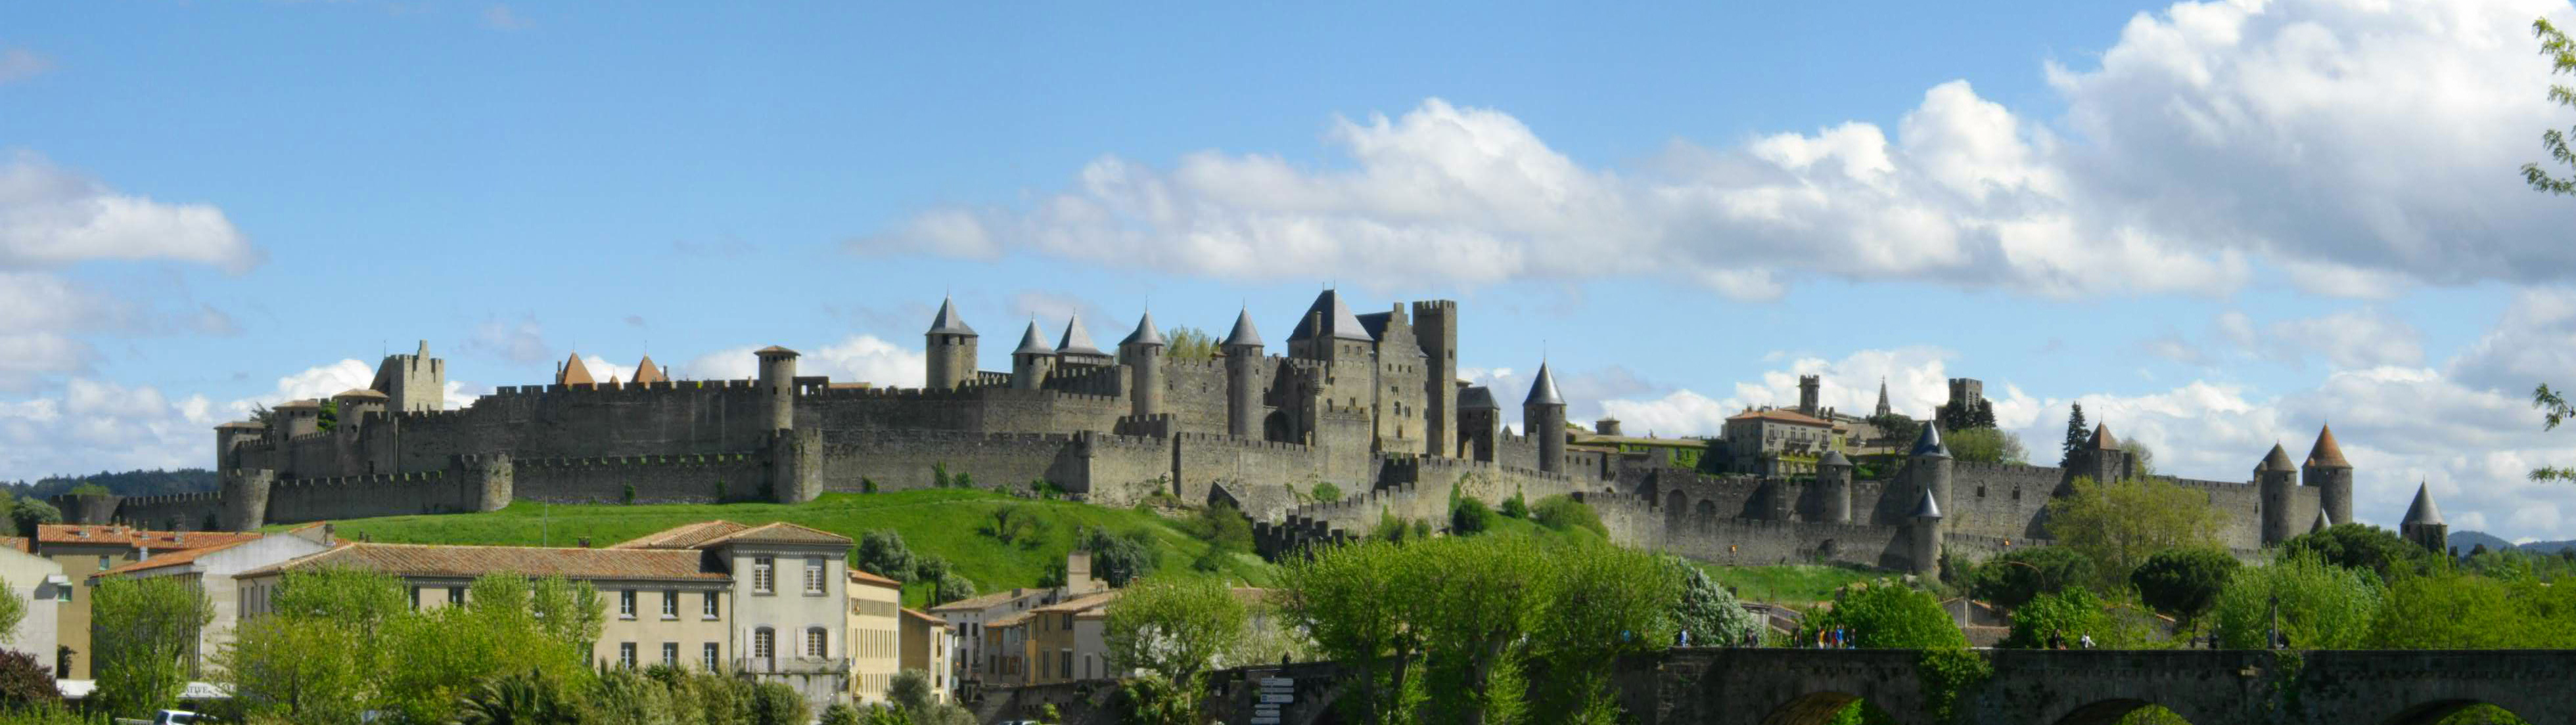 The castle in Carcassonne, France